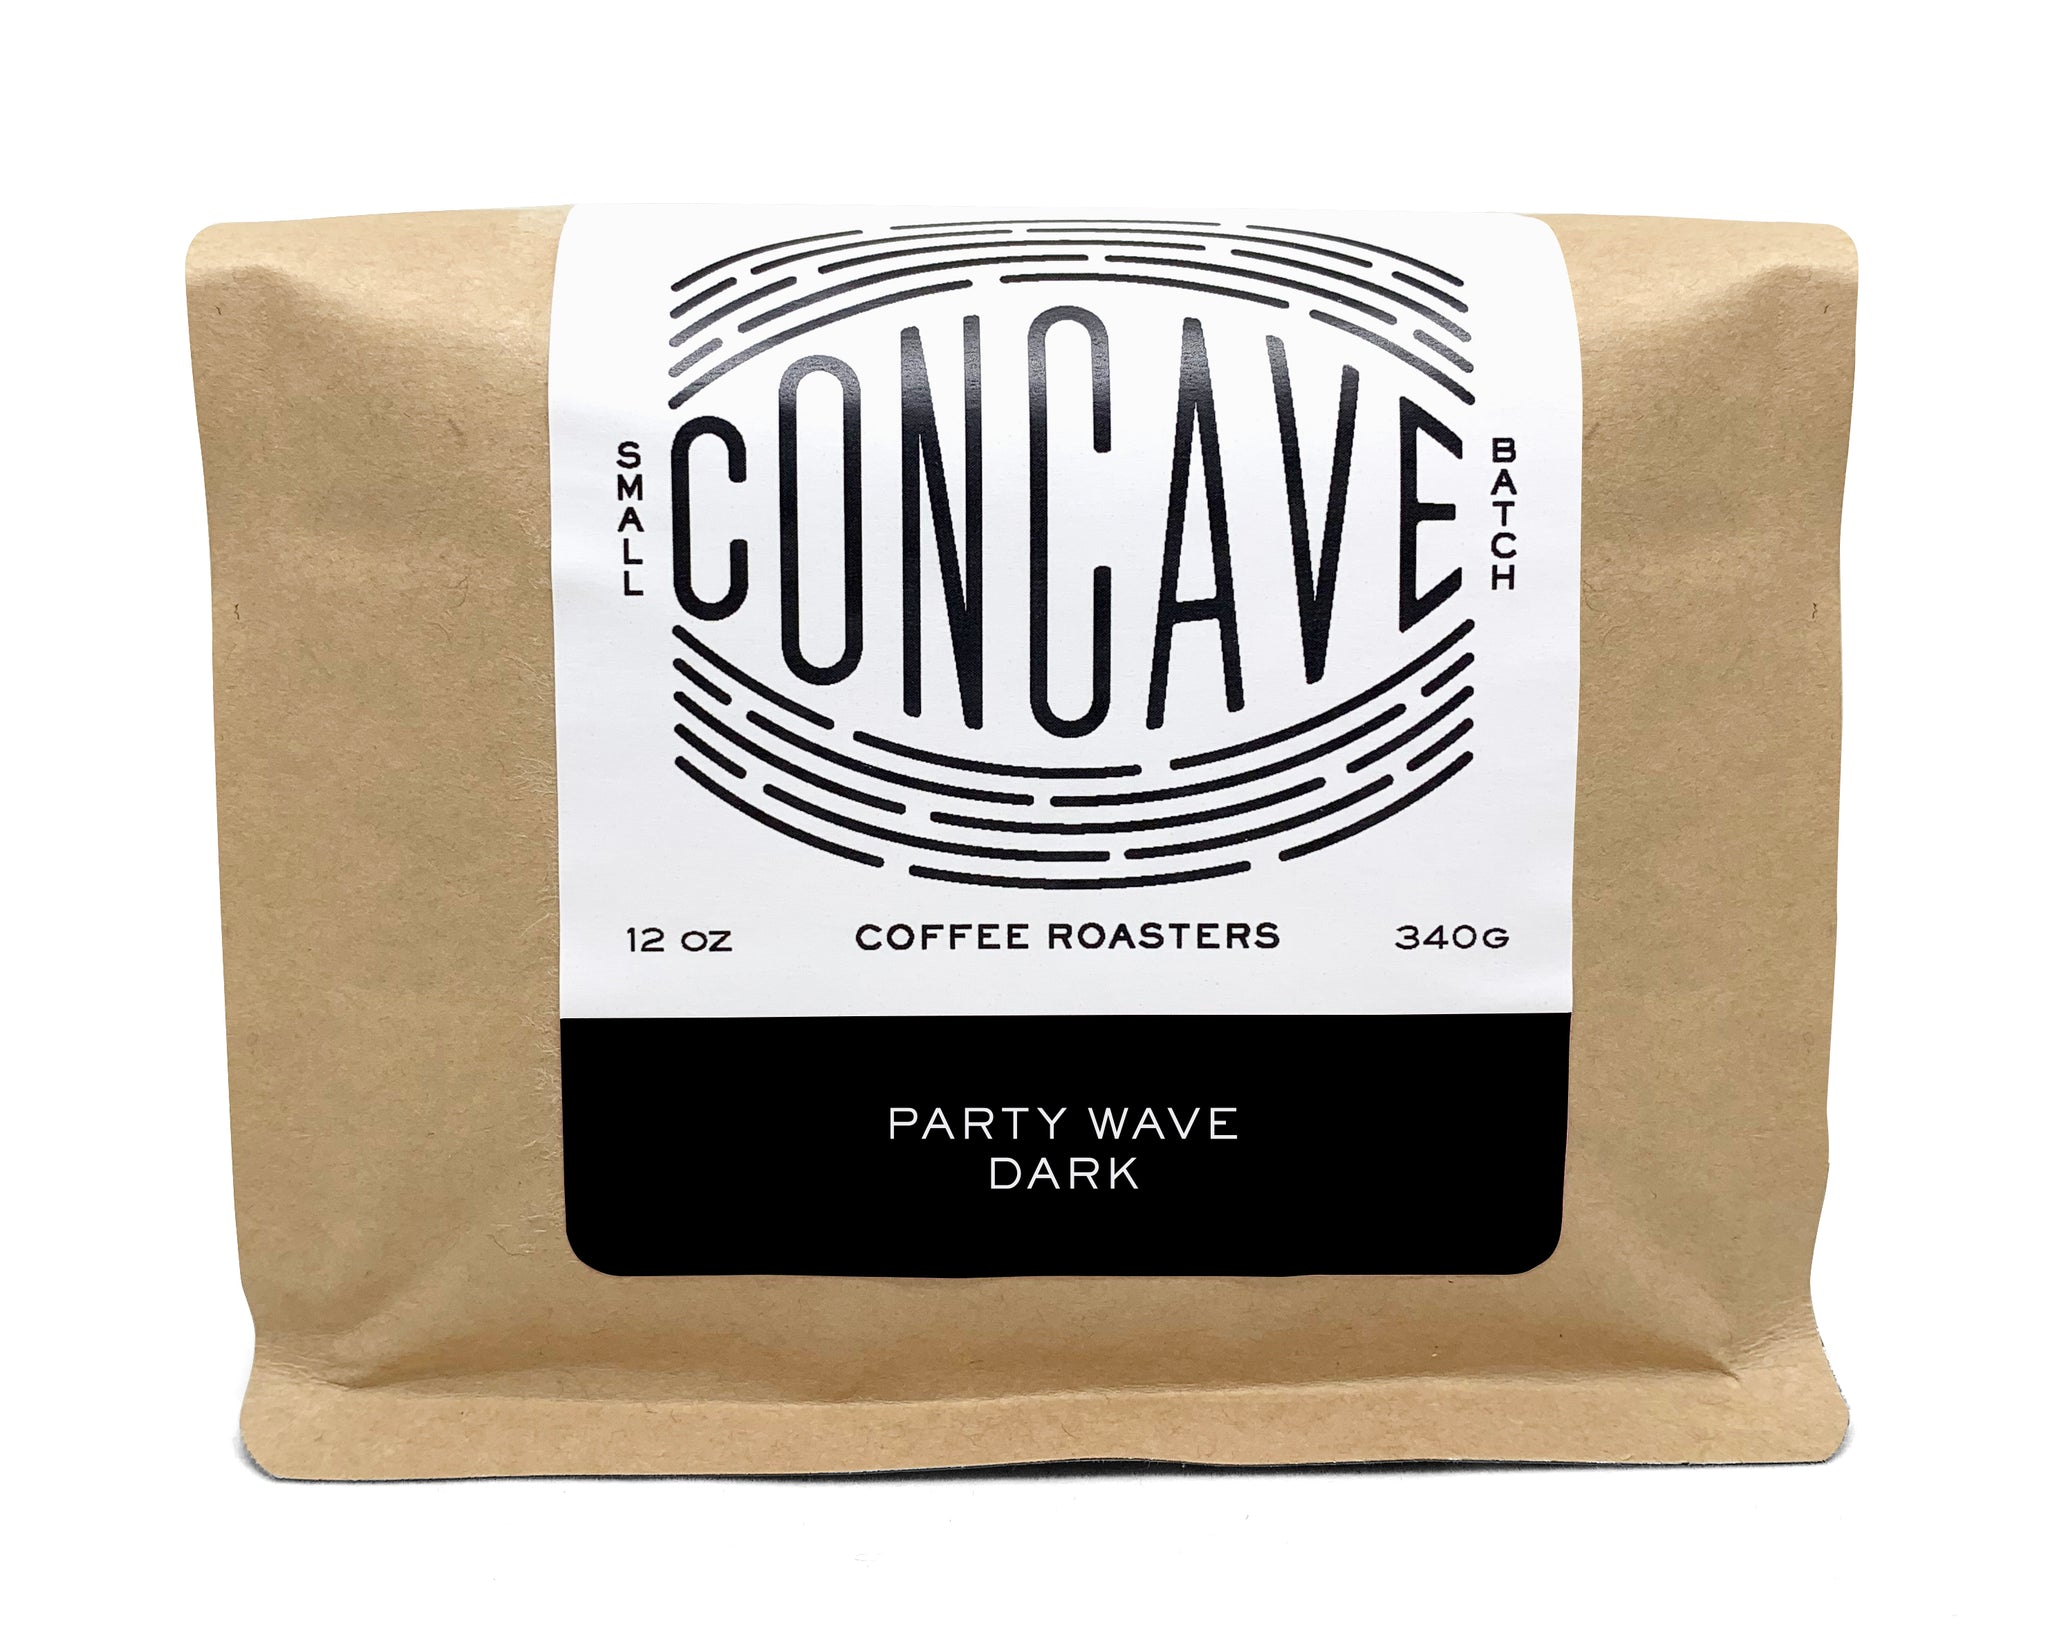 Party Wave | Concave Coffee Roasters | Dript Coffee Co.